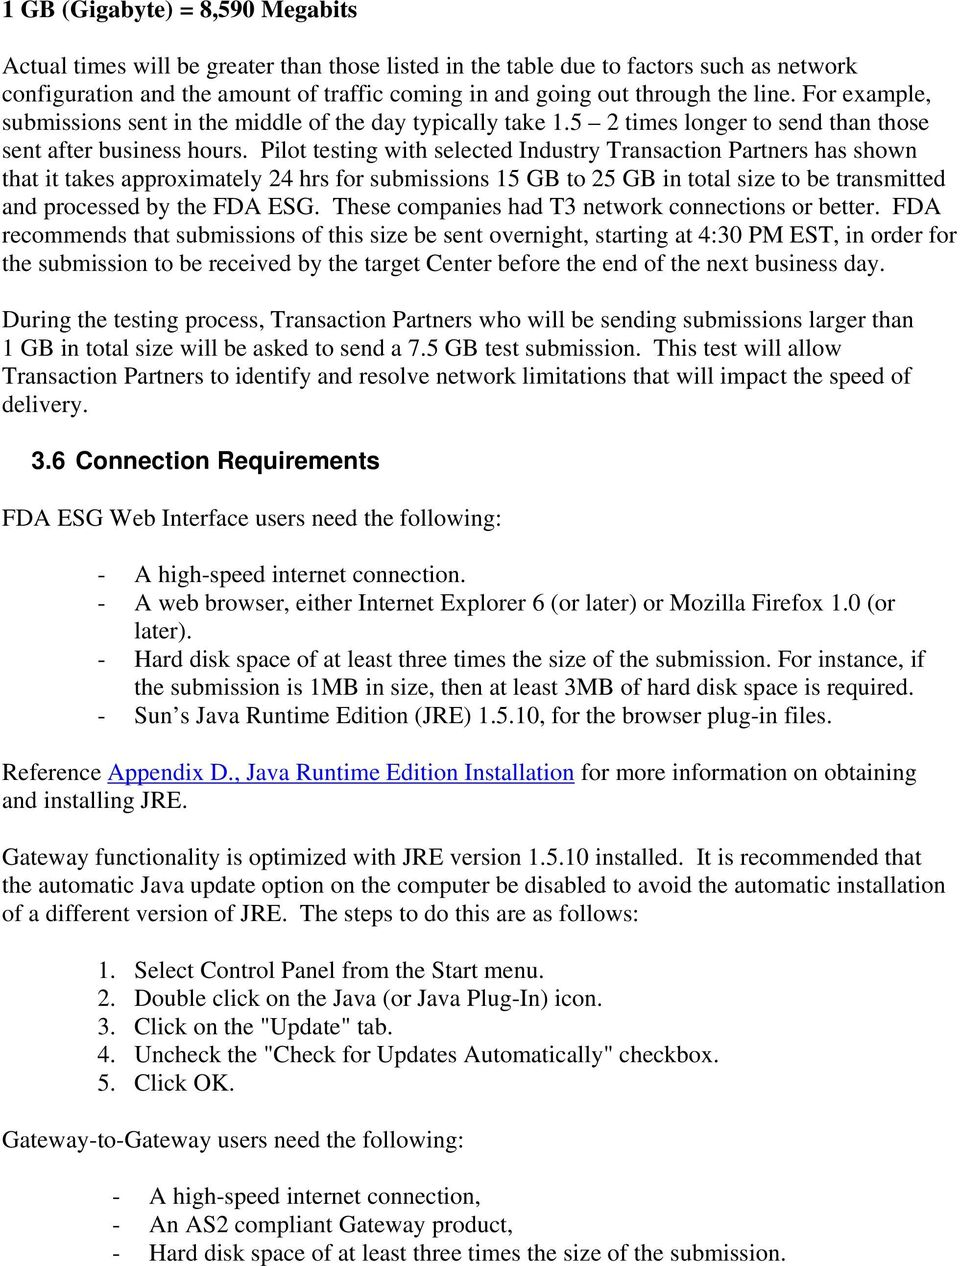 FDA Electronic Submissions Gateway (ESG) User Guide  July 1, PDF